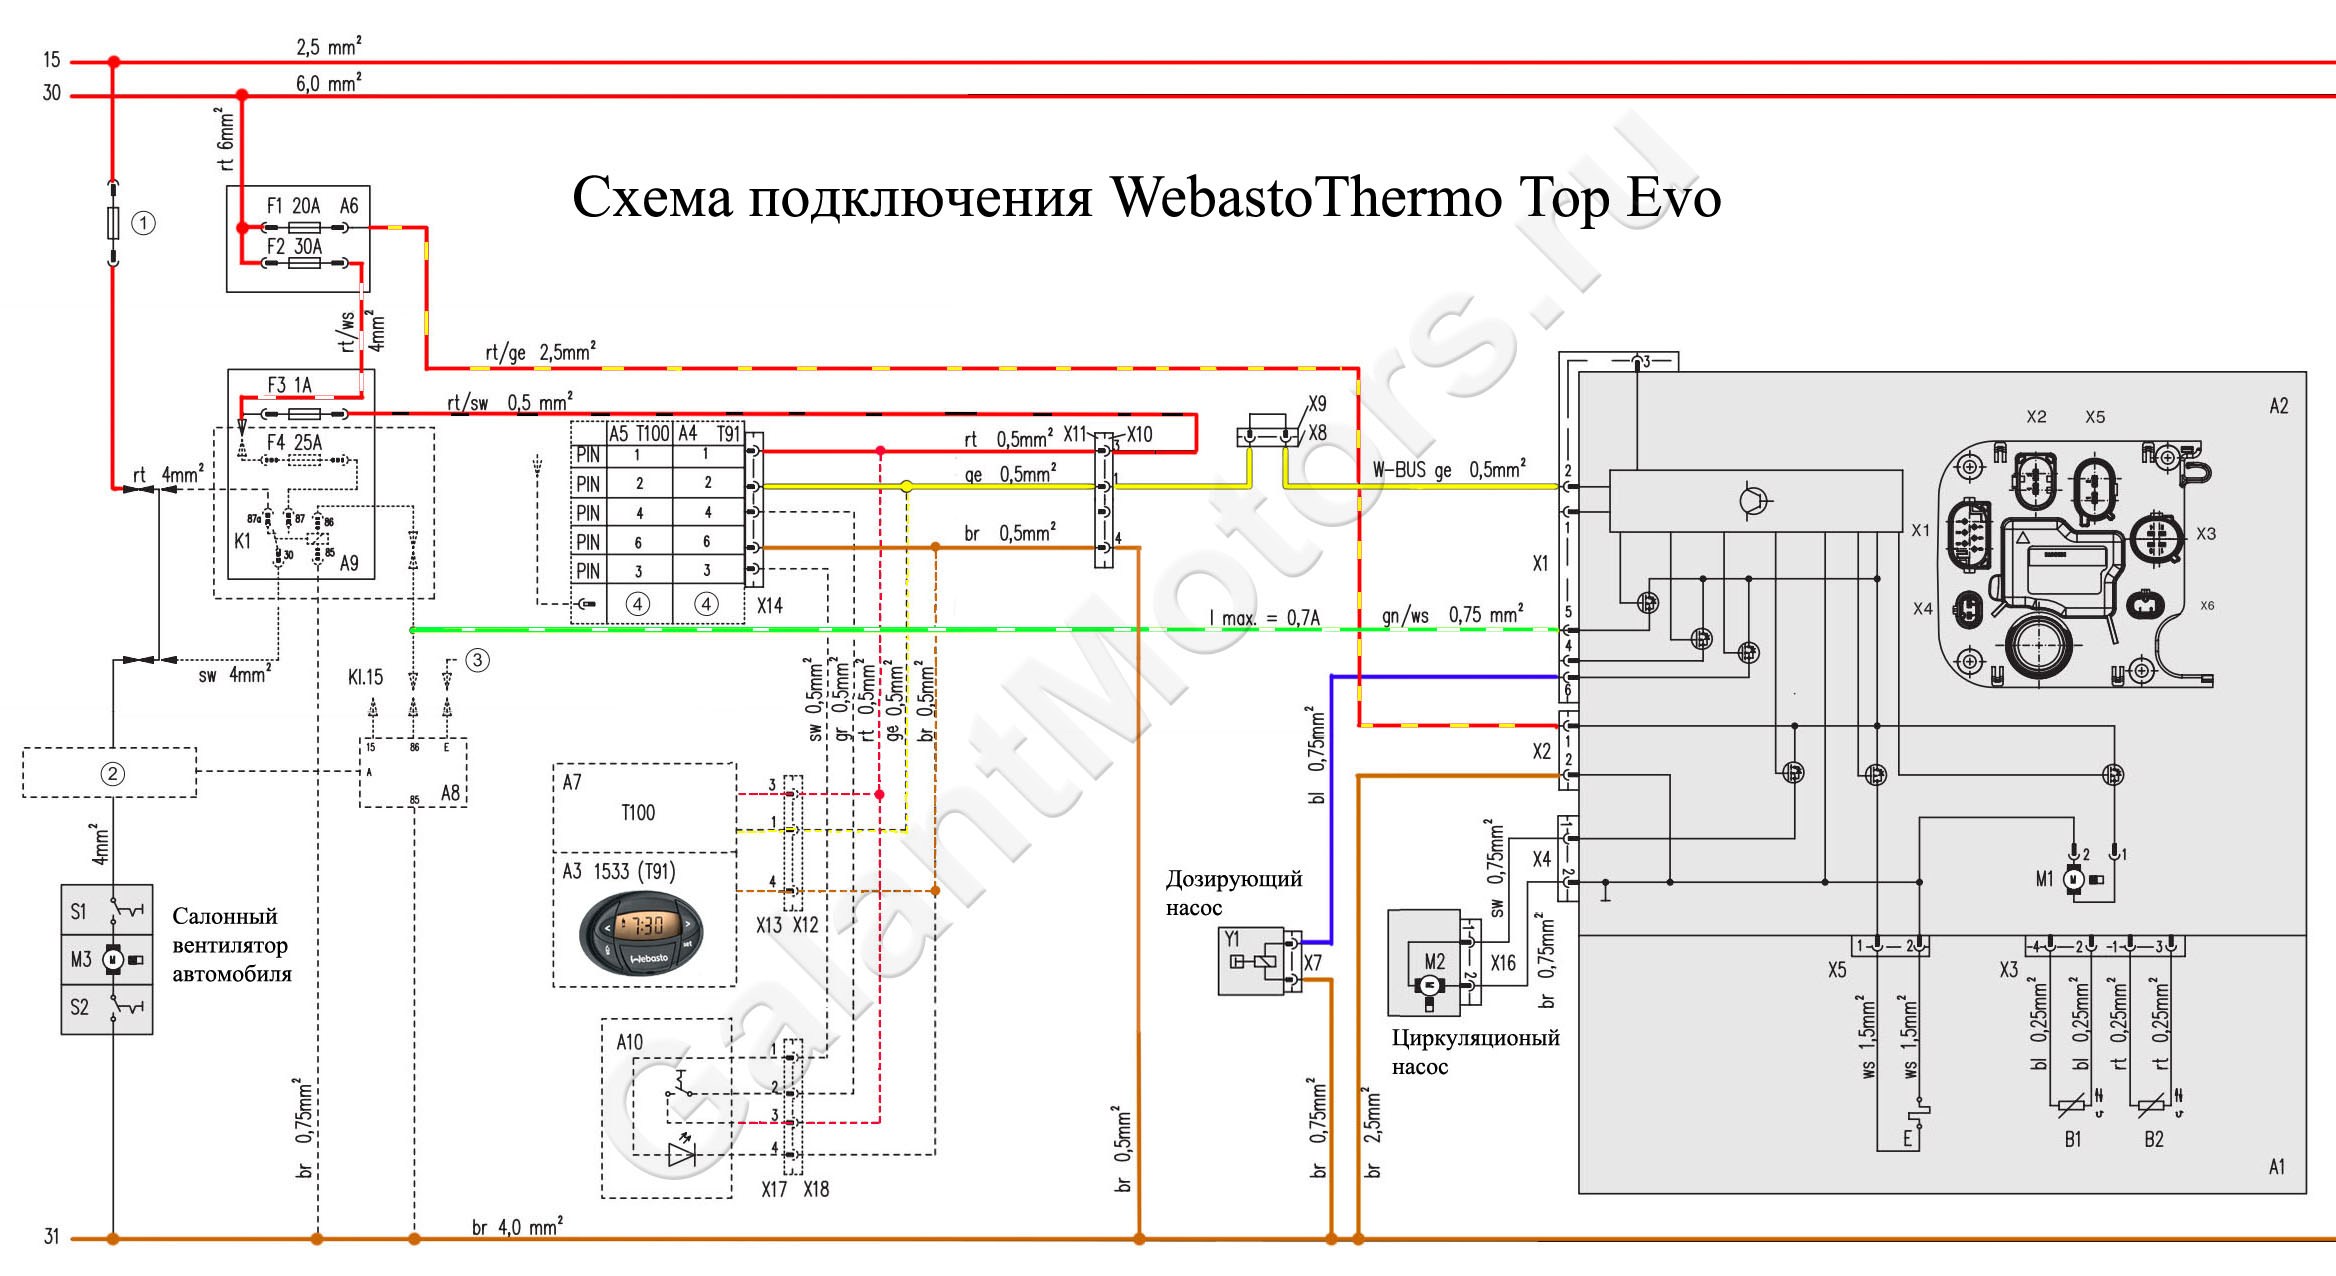 http://galantmotors.ru/document/heaters/Webasto/Thermo_Top_Evo/Thermo_Top_Evo_Shema.jpg